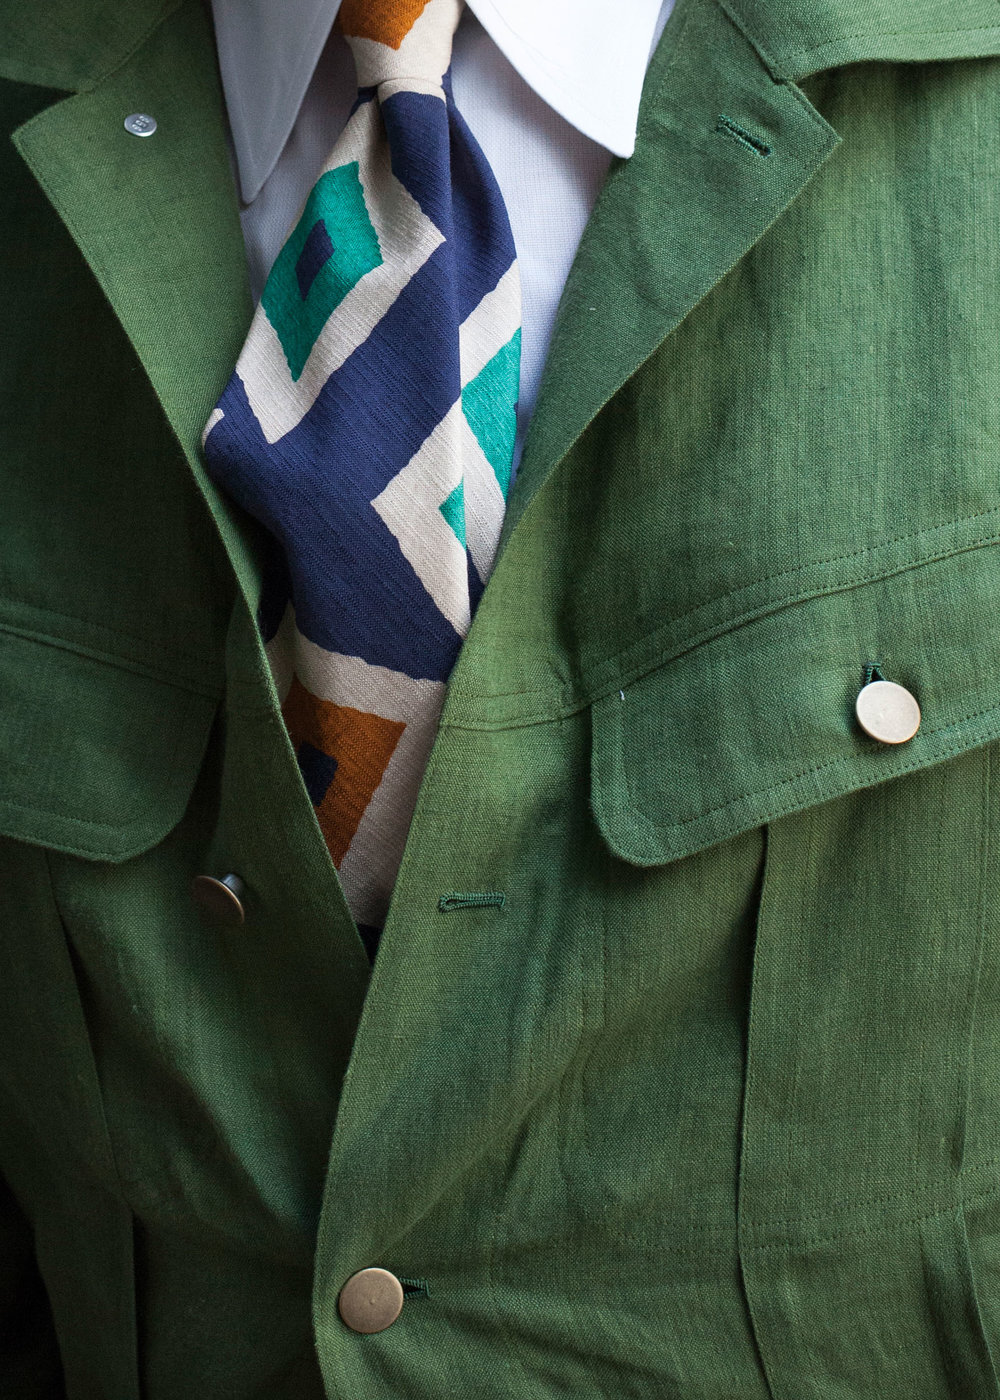 The rough texture, large pattern, and bright colors of this playful silk/cotton tie complements the casual vibe of Alan's bespoke linen trucker jacket.